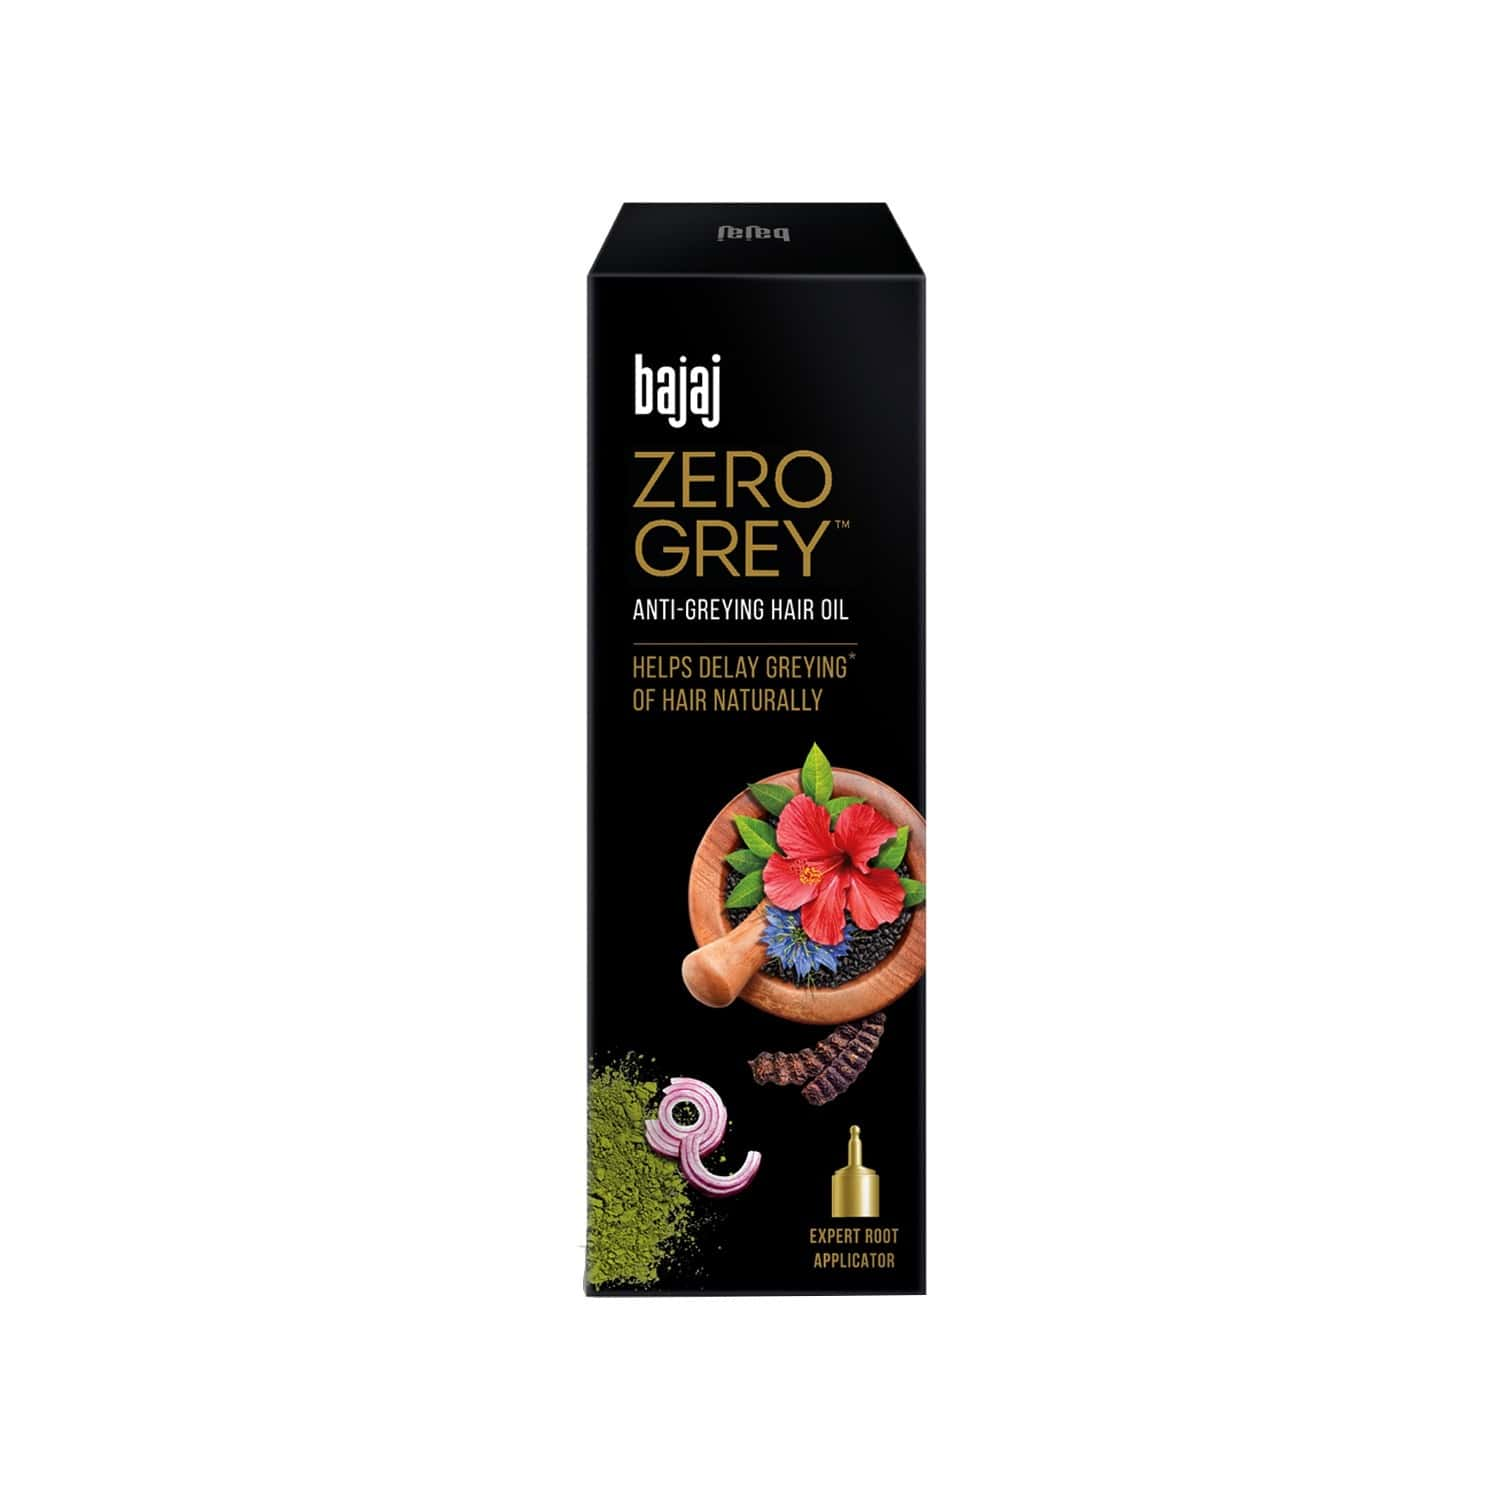 Bajaj Zero Grey Hair Oil Enriched With Onion, Helps Fight Greying Of Hair Naturally, 100ml